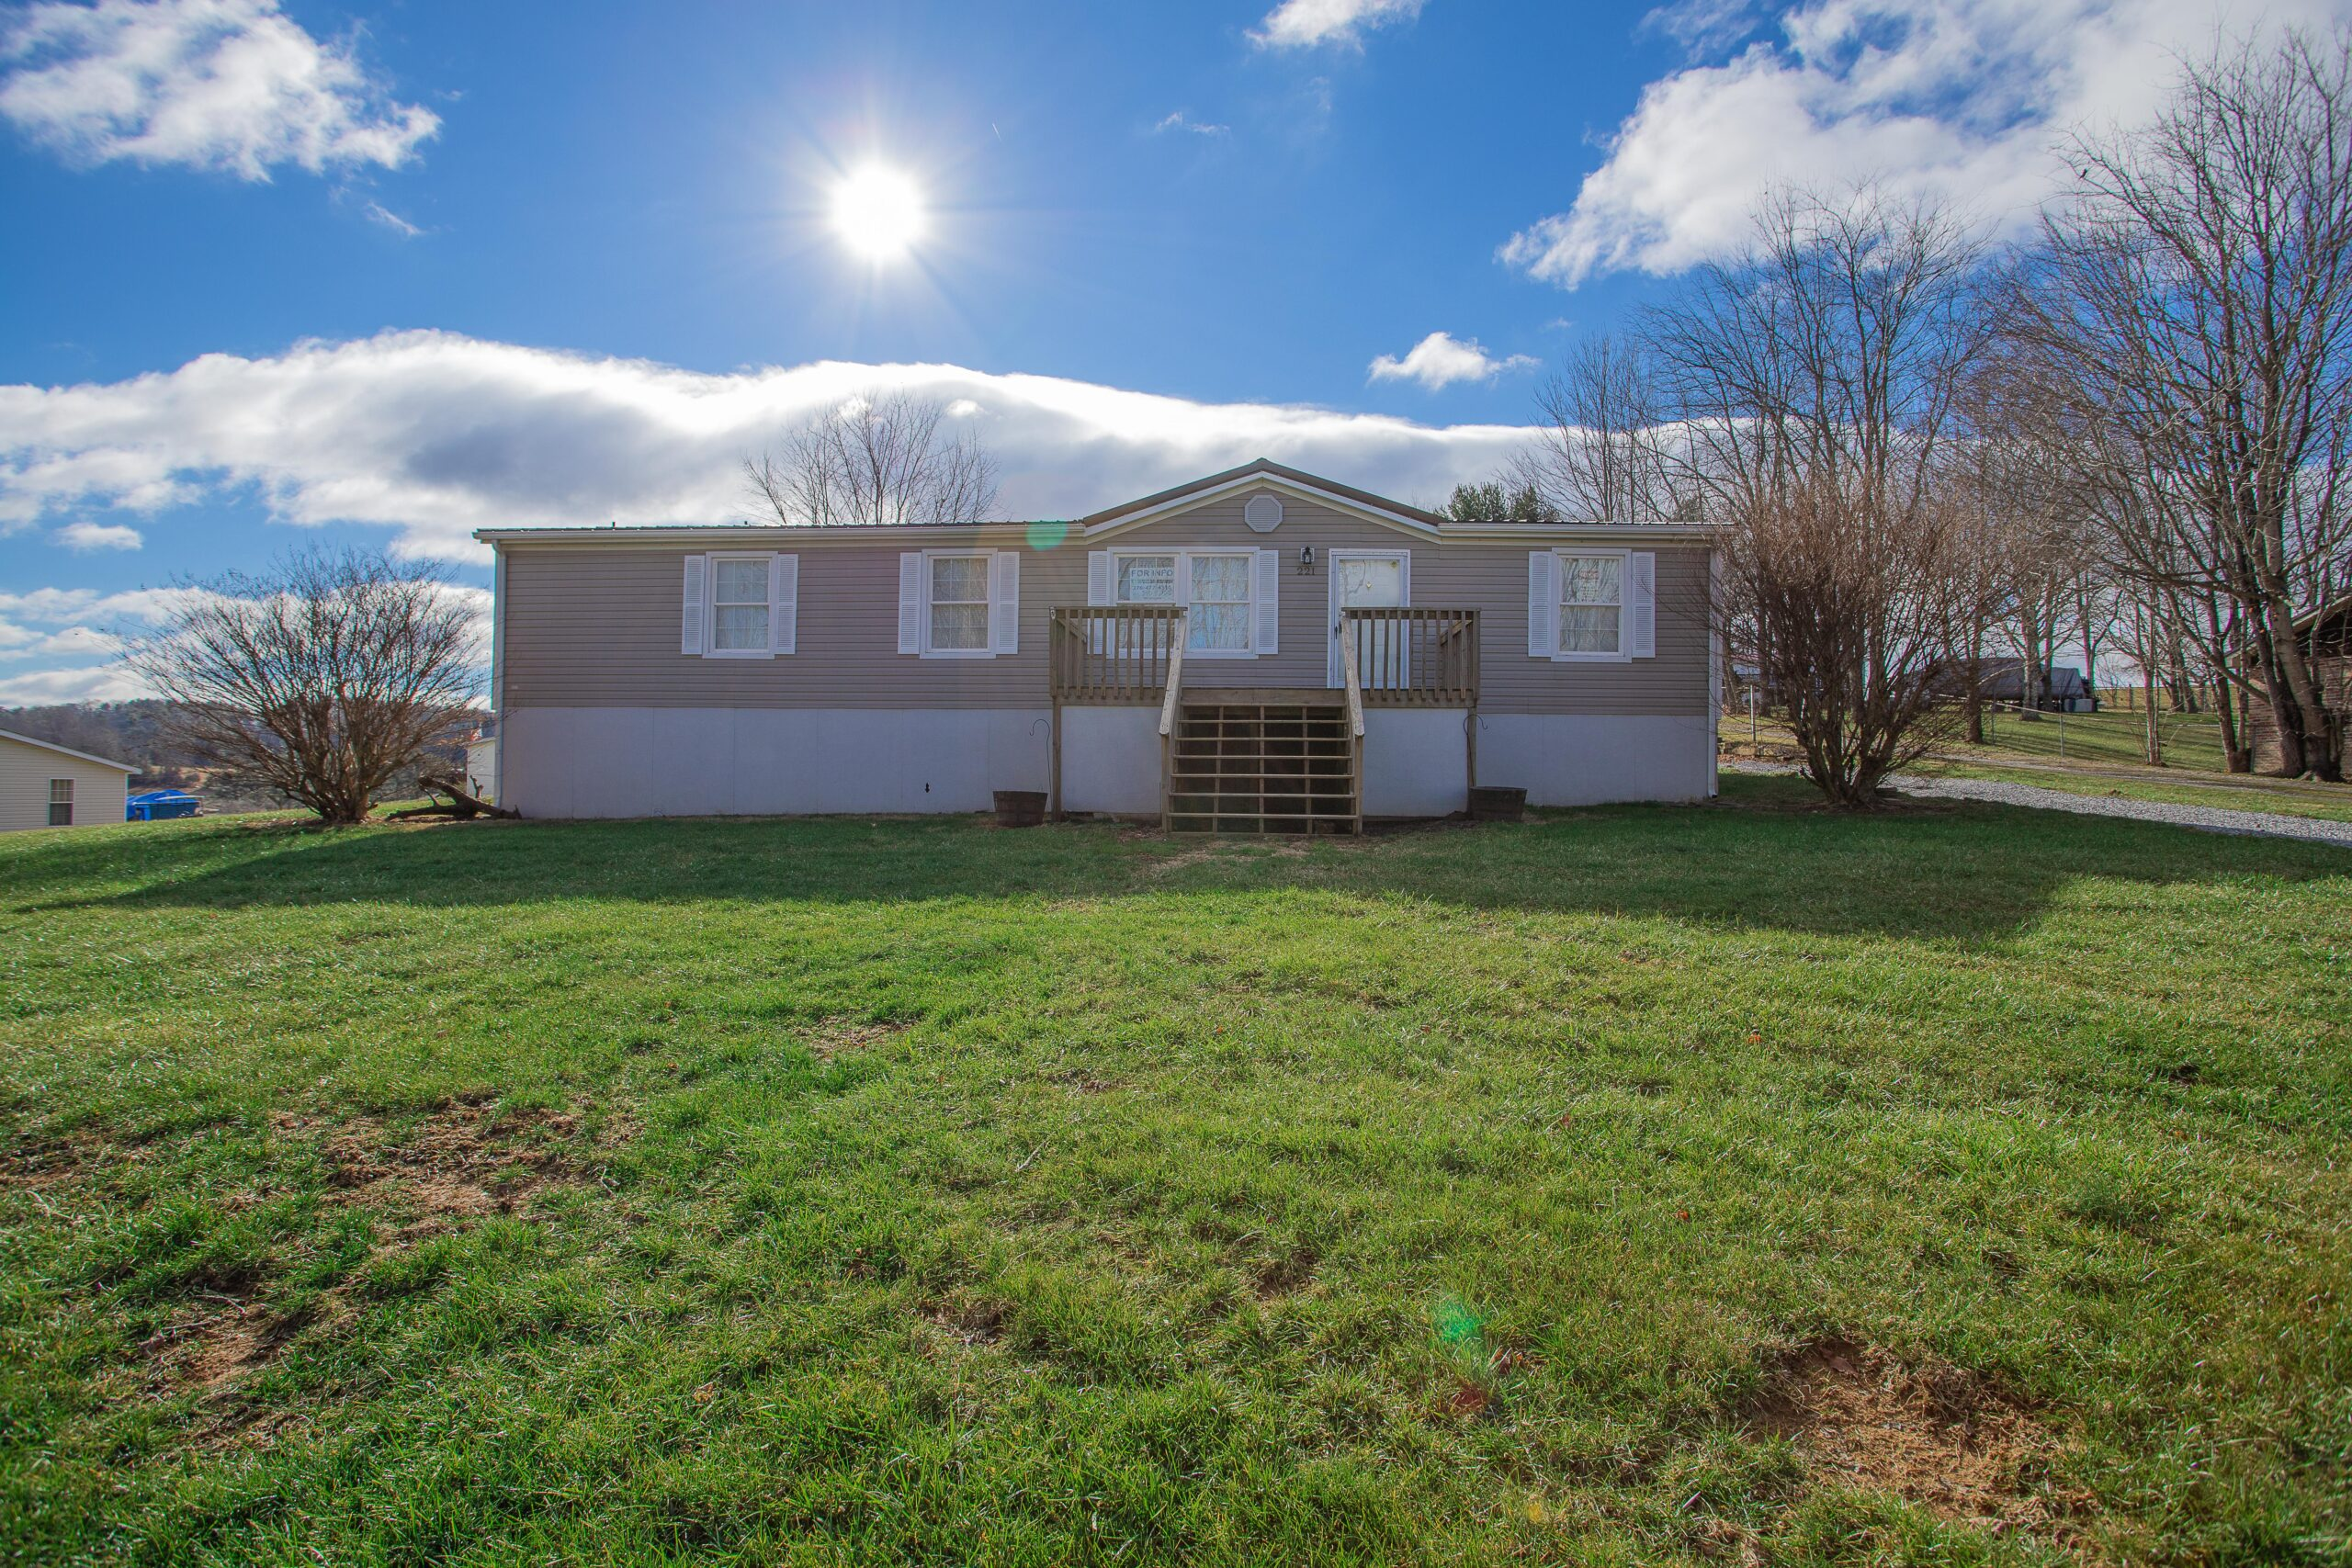 Home for Sale in Wythe County! 221 Felts Lane in Max Meadows